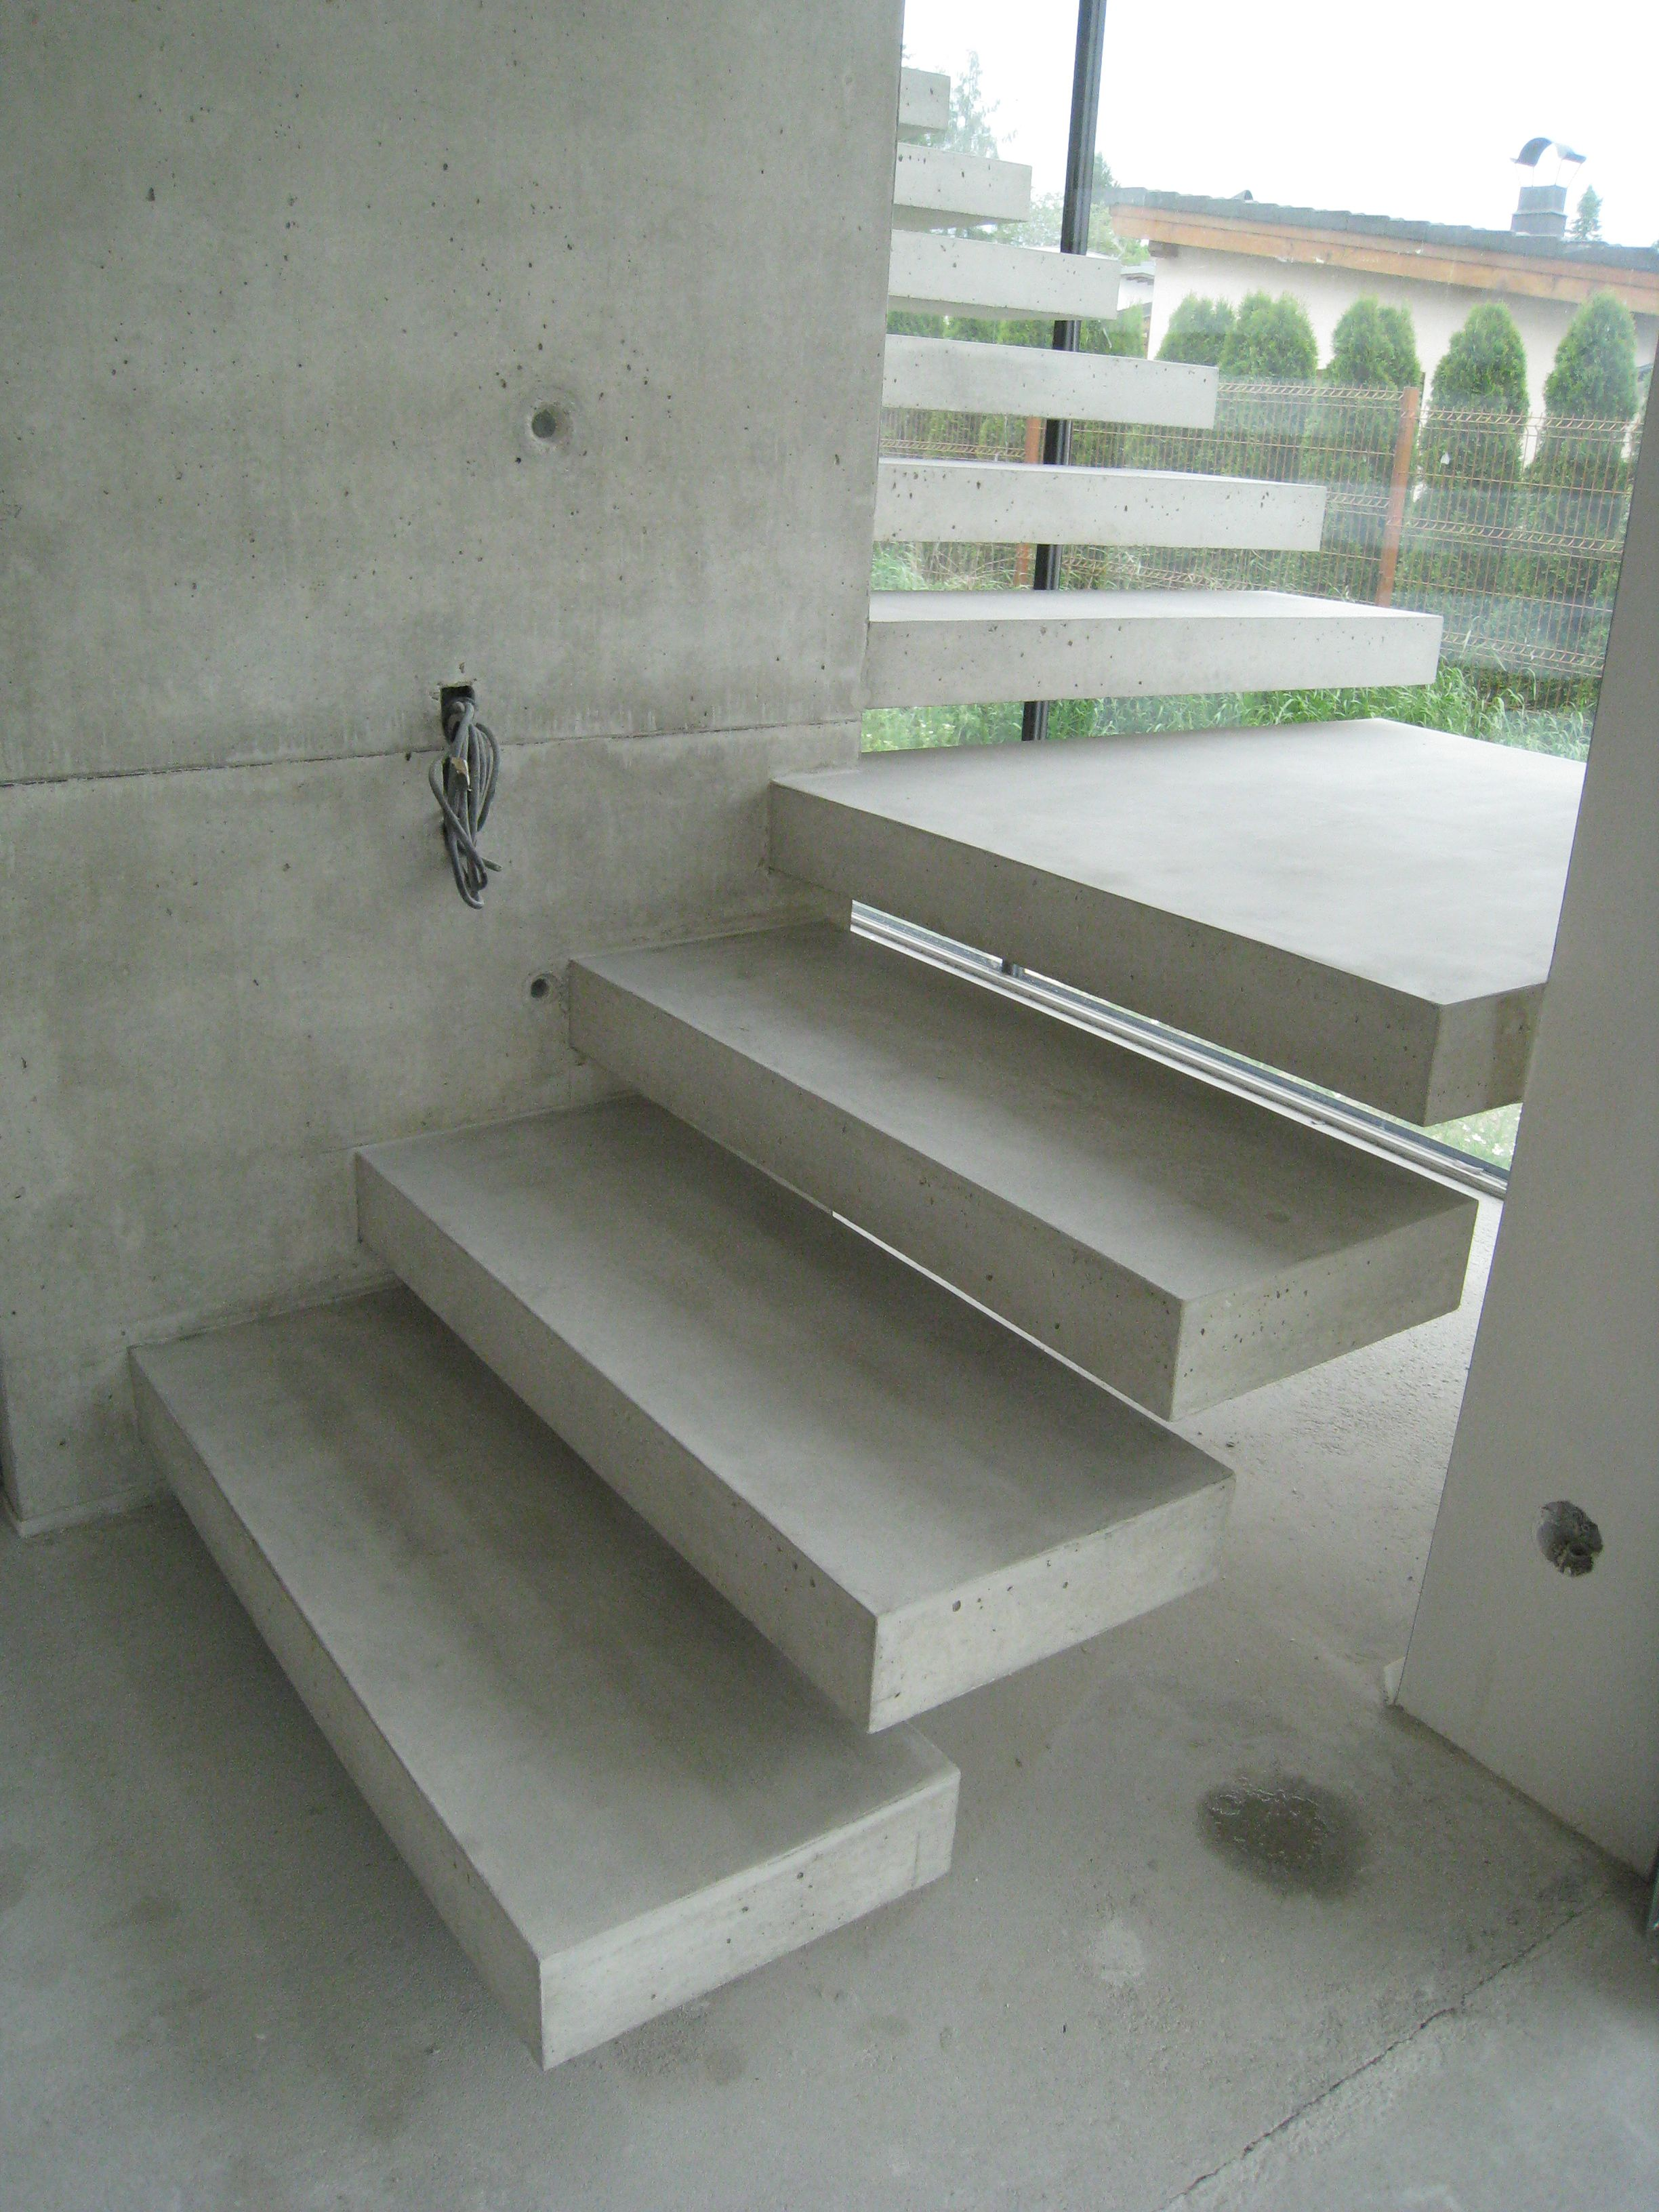 Floating Concrete Stairs And Landing. Stairs We Love At Design Connection,  Inc. | Kansas City Interior Design Http://www.DesignConnectionInc.com/Blog  ...